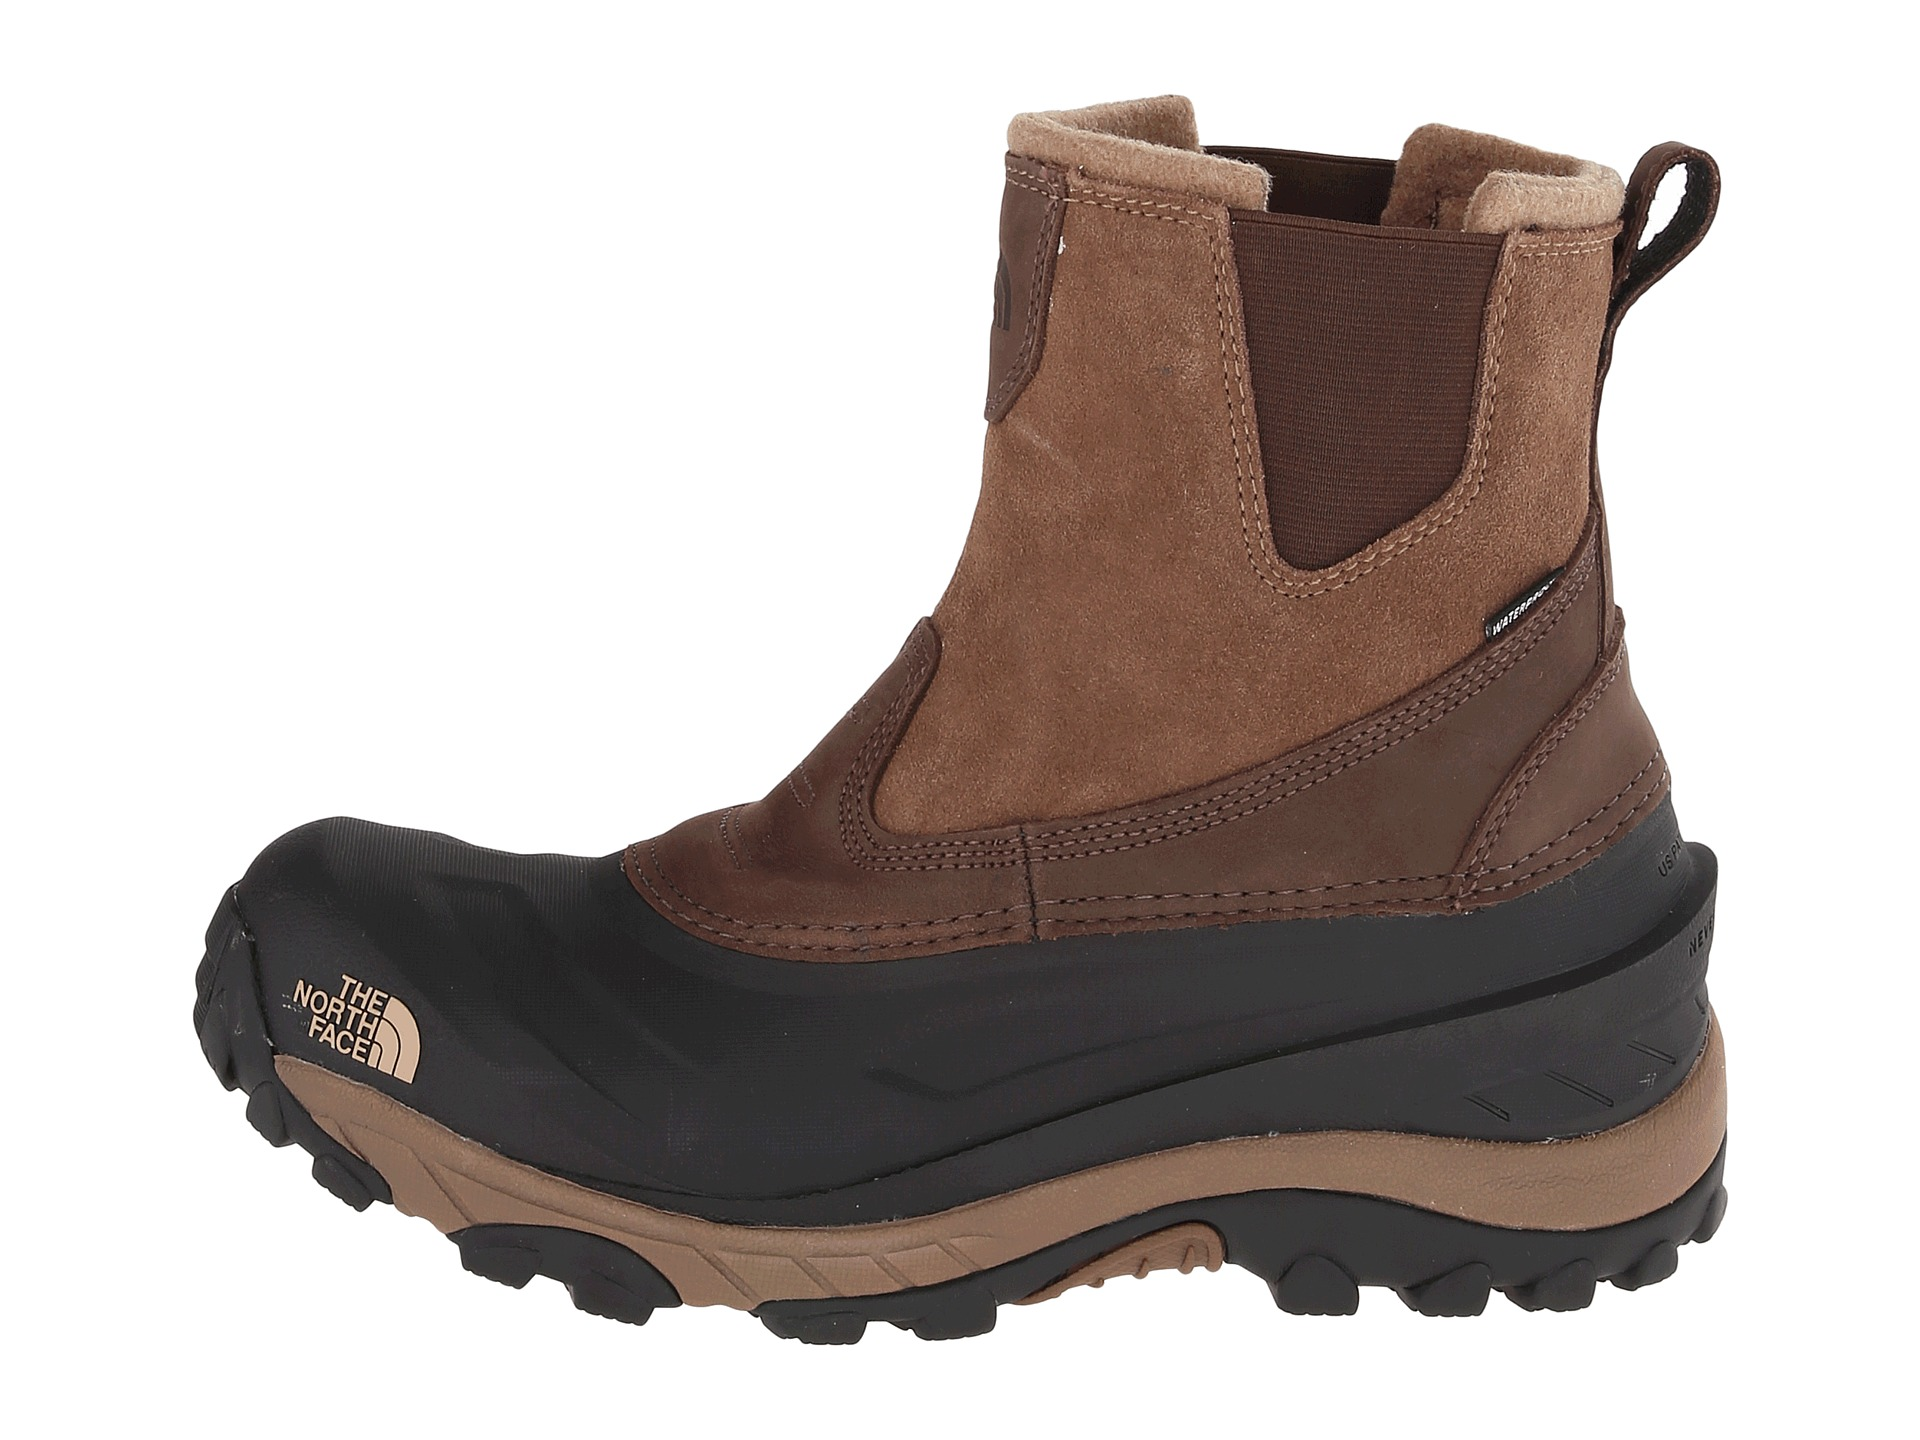 The North Face Chilkat II Pull-On - Zappos.com Free Shipping BOTH Ways